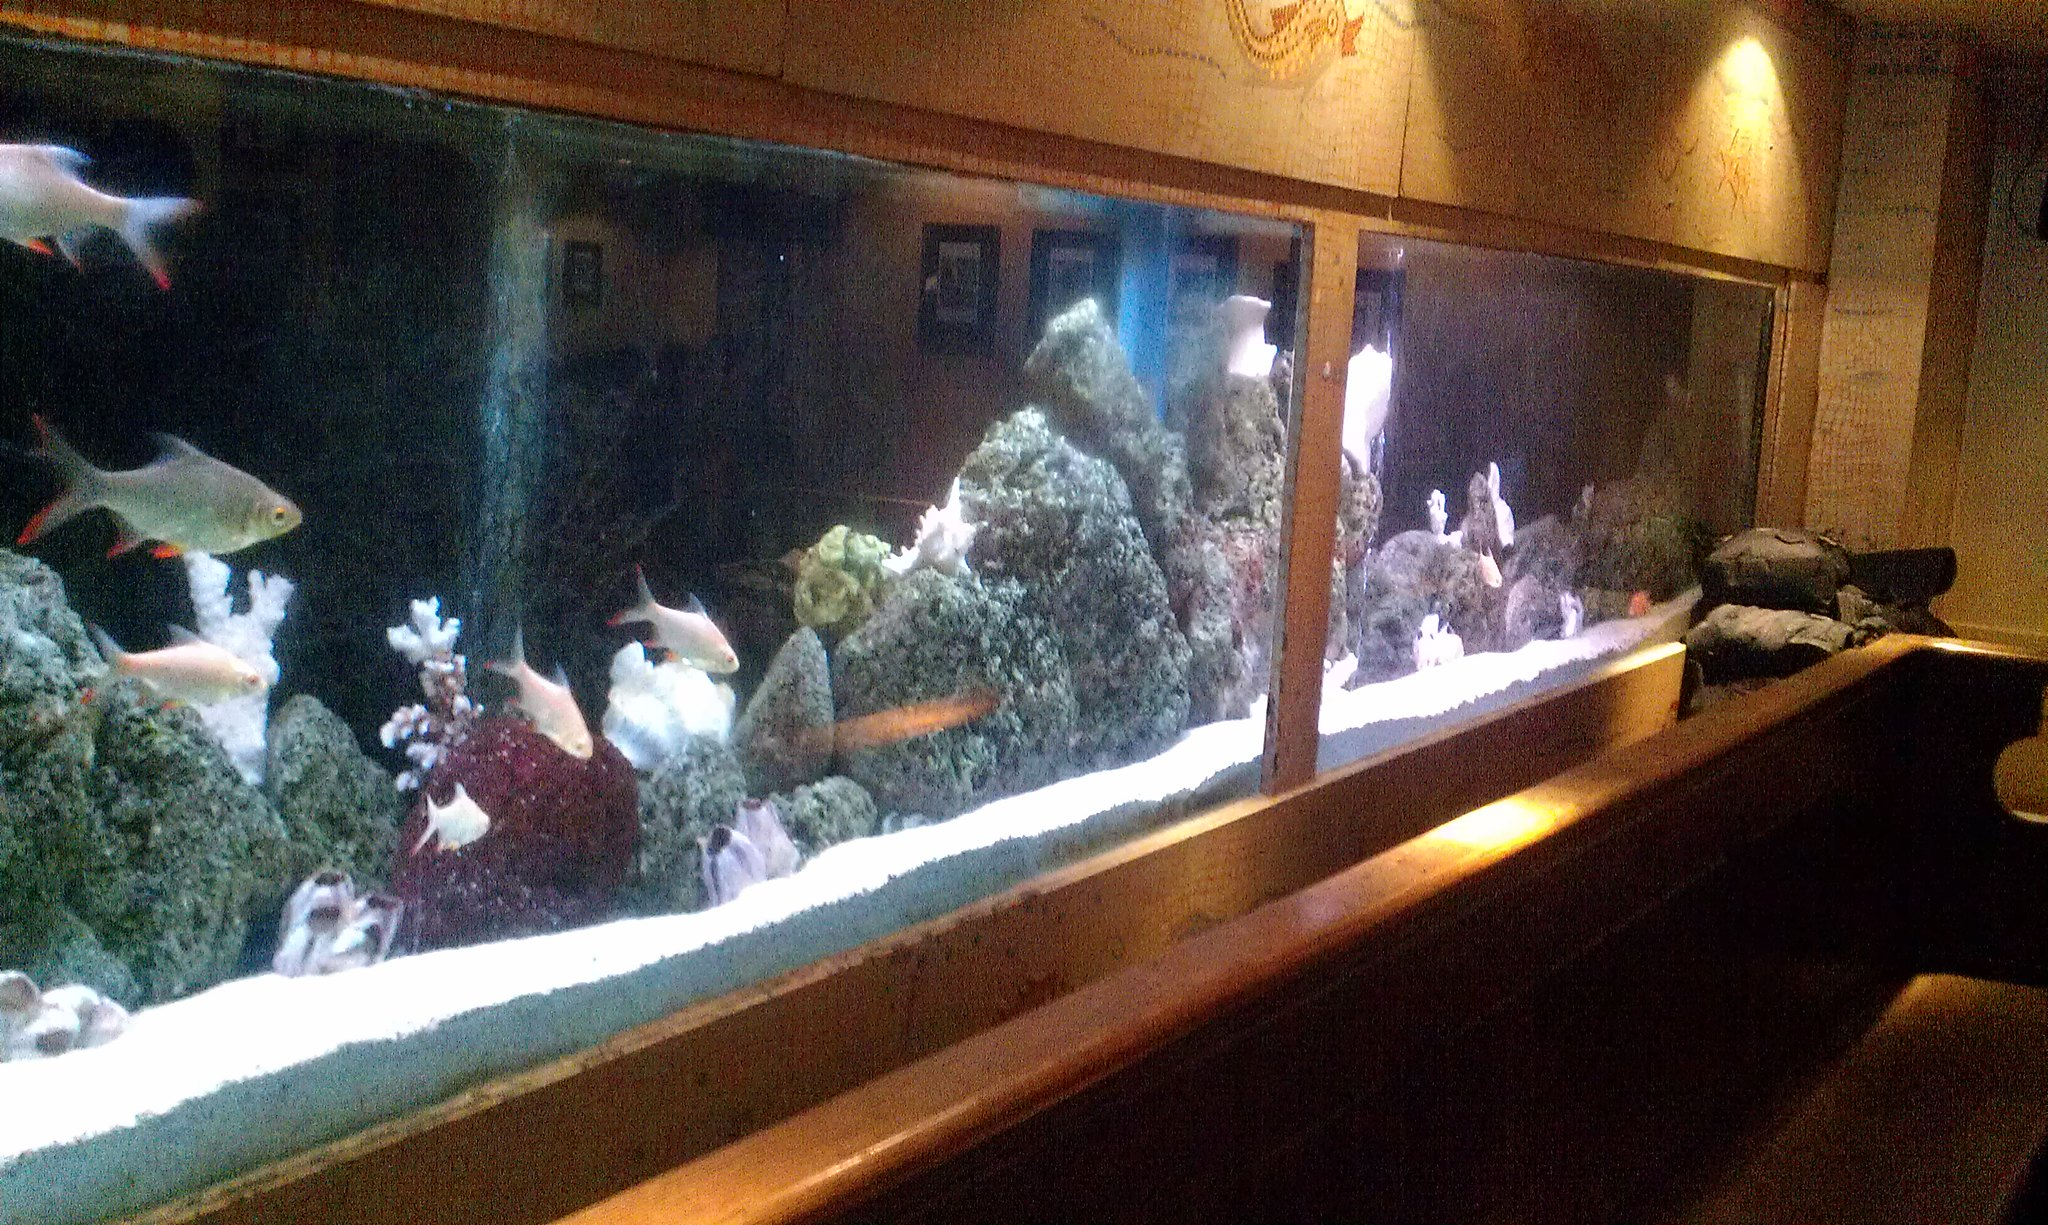 The legendary fish tank in the bush house bar flickr for Fish tank house